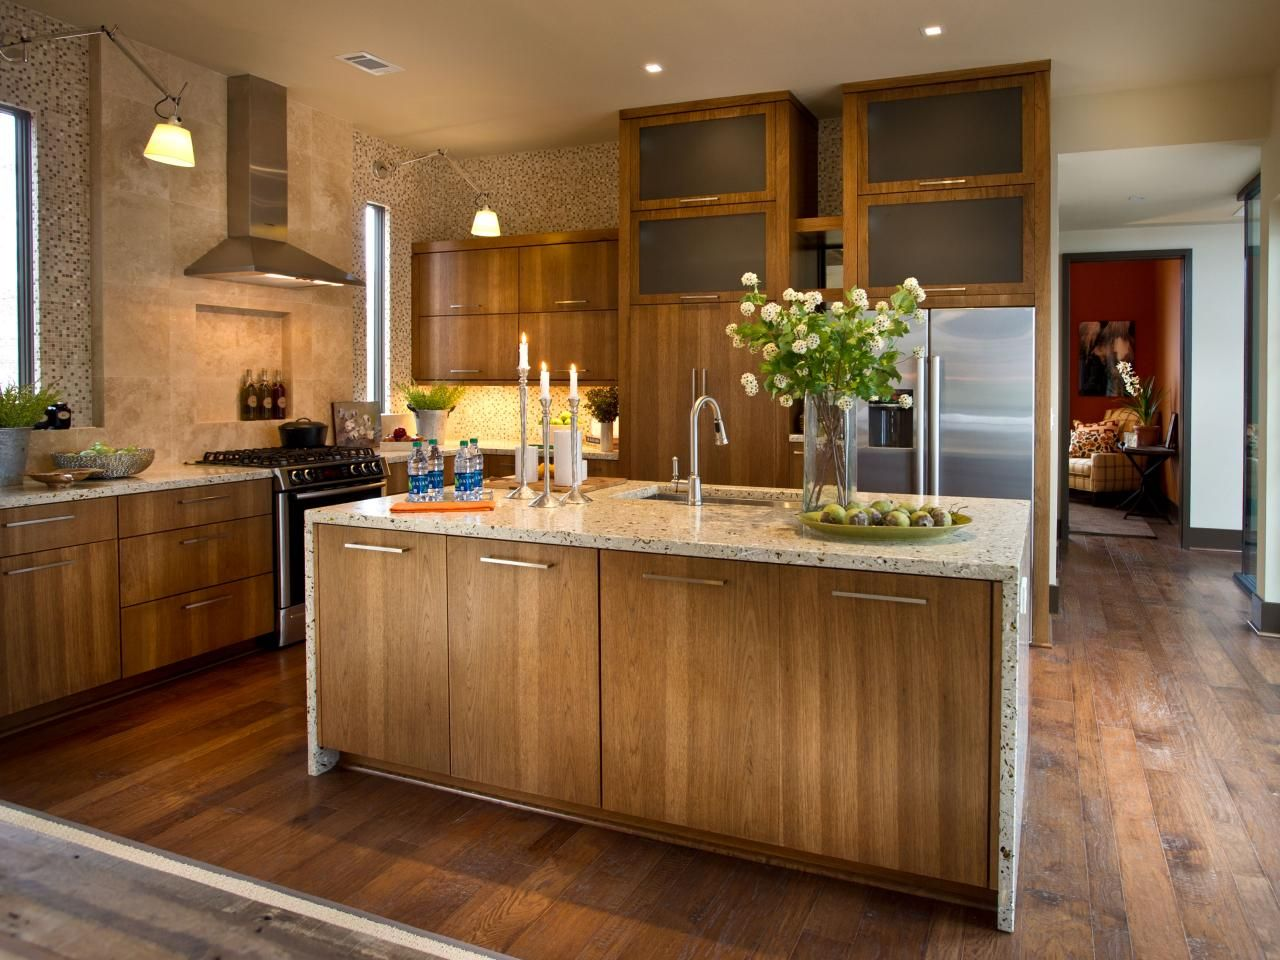 browse through gorgeous kitchen photos from hgtv smart home and vote